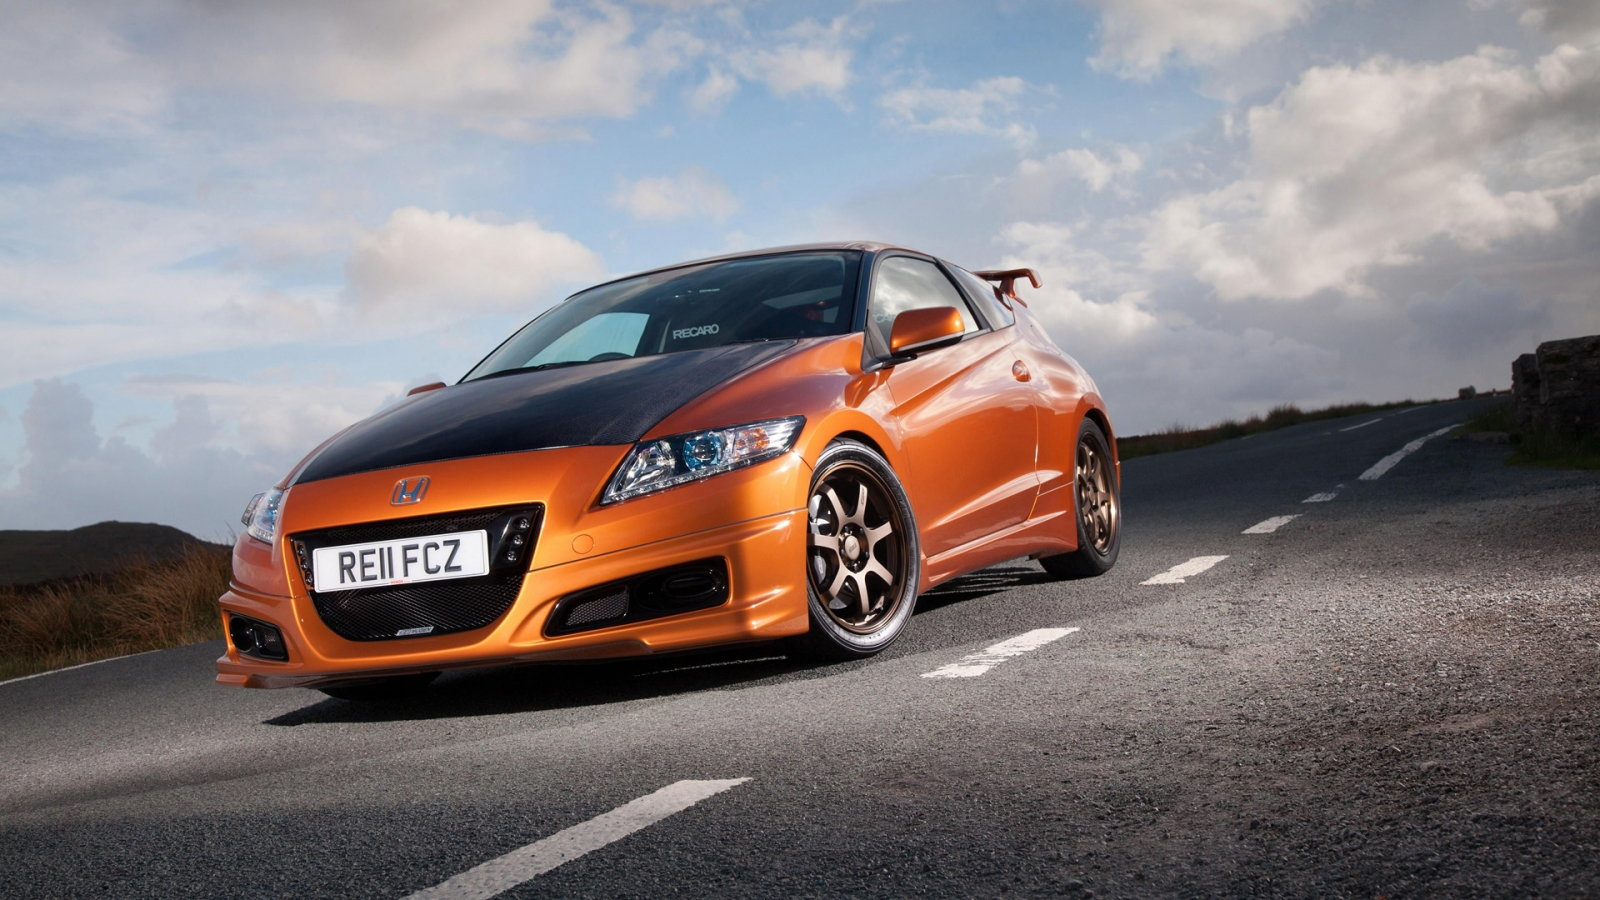 5 Reasons Why the CR-Z was Doomed to Fail